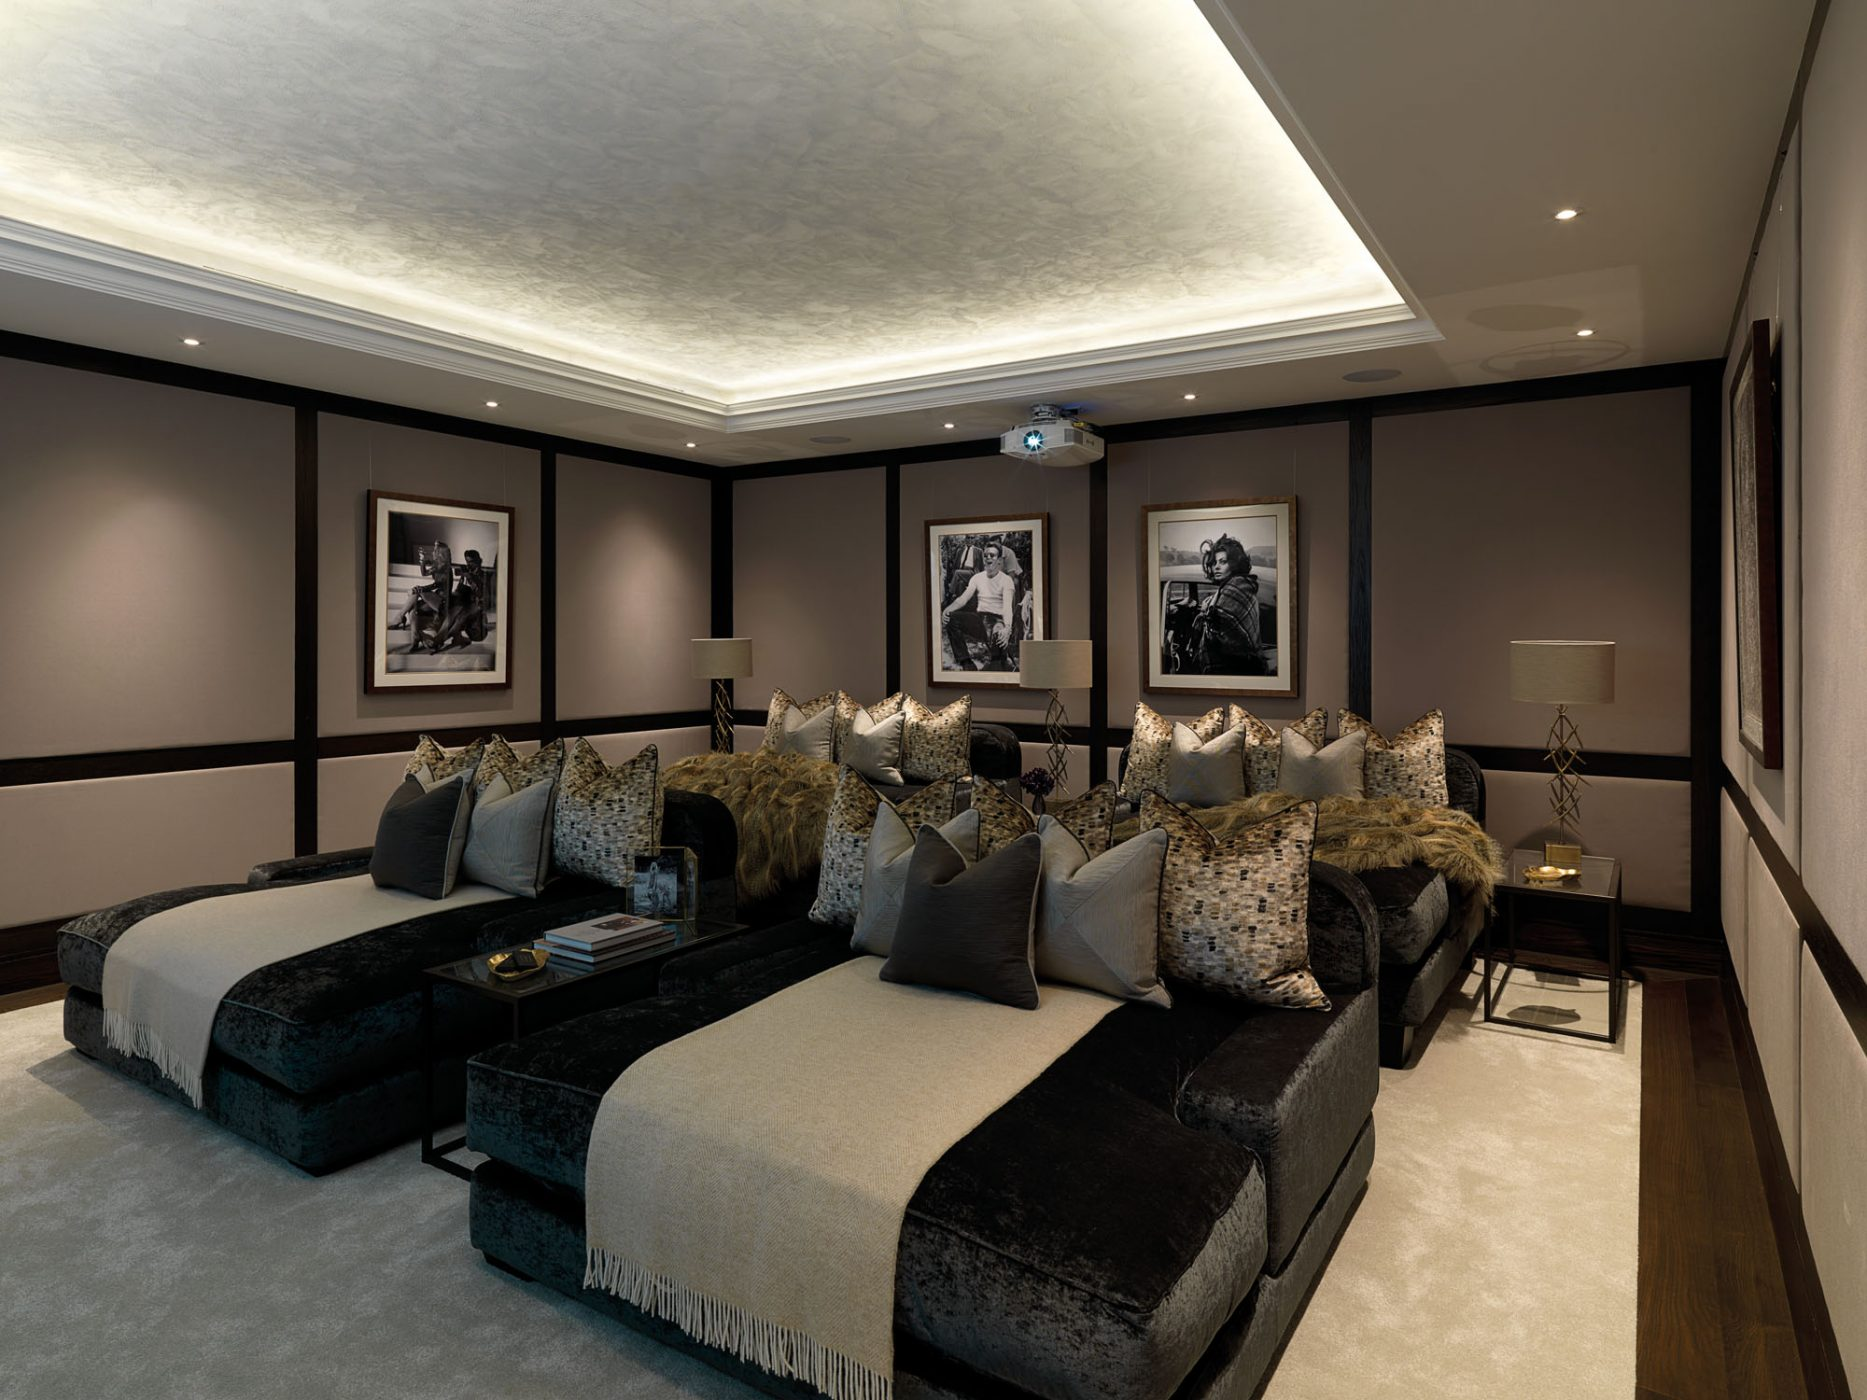 Home Cinema Design Mallett London